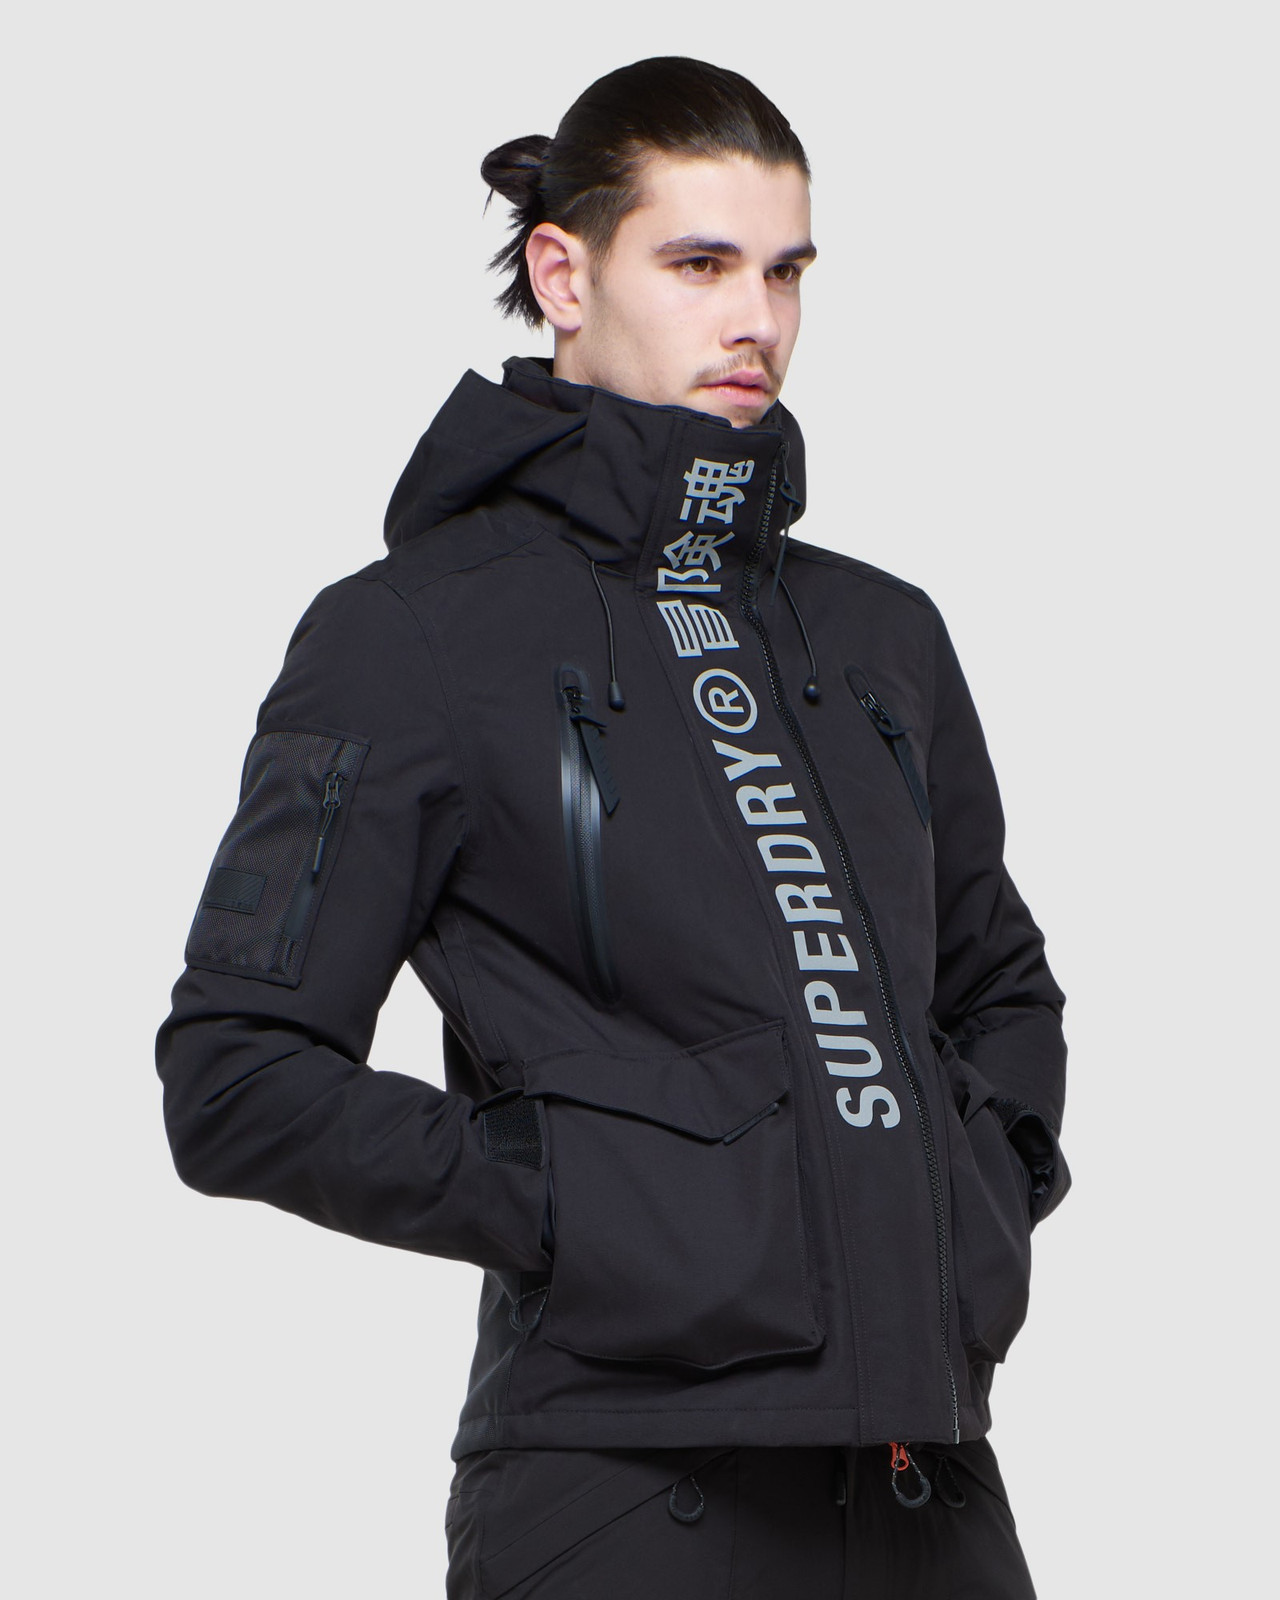 Superdry Mens ULTIMATE MOUNTAIN RESCUE JKT Black Snow Jackets 2